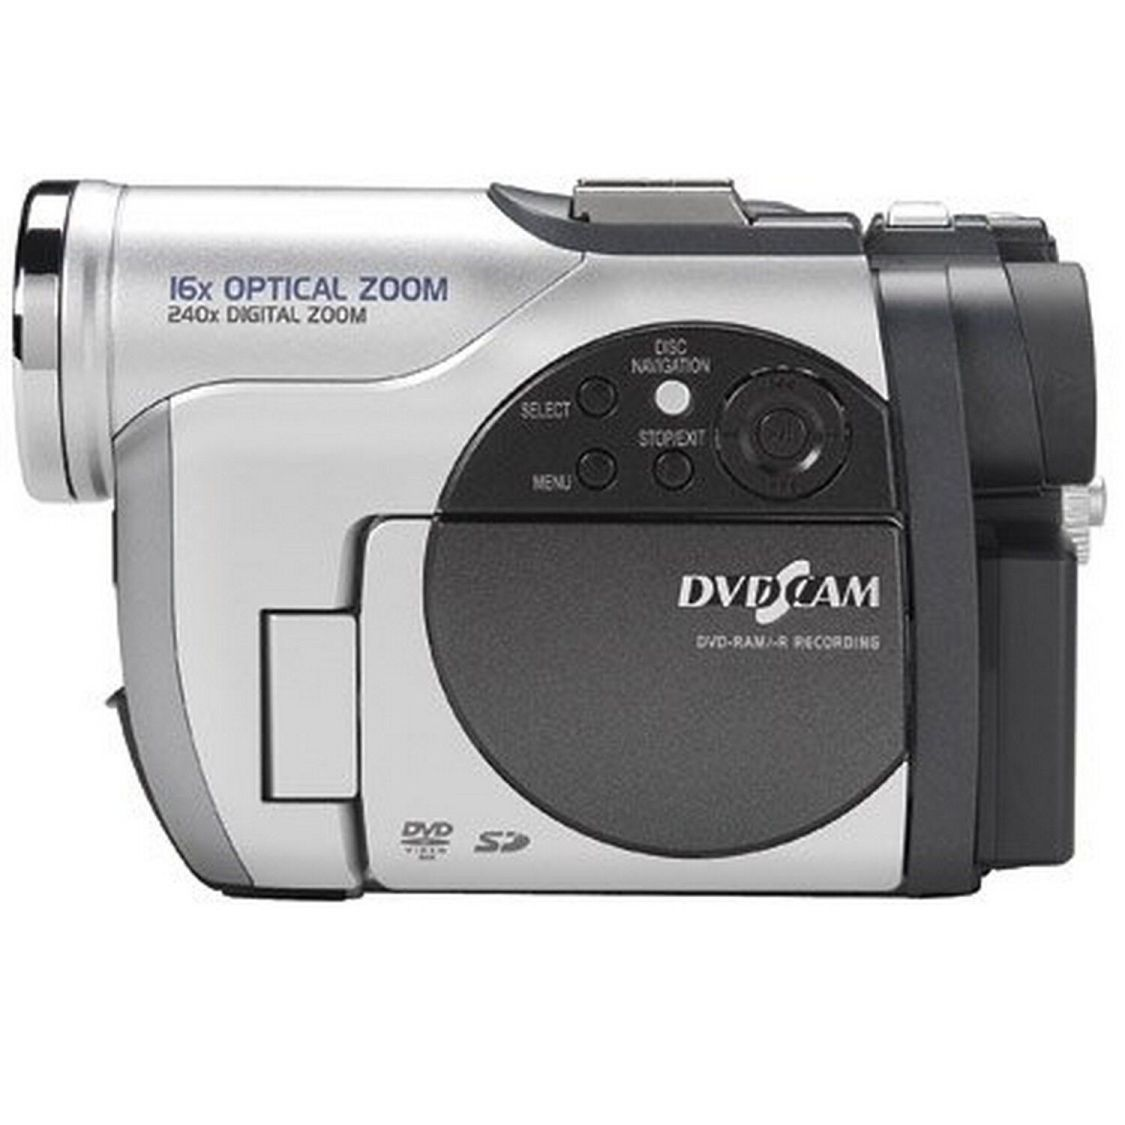 Hitachi DVD camcorder 16x Optischer Zoom 240x  digitaler Zoom